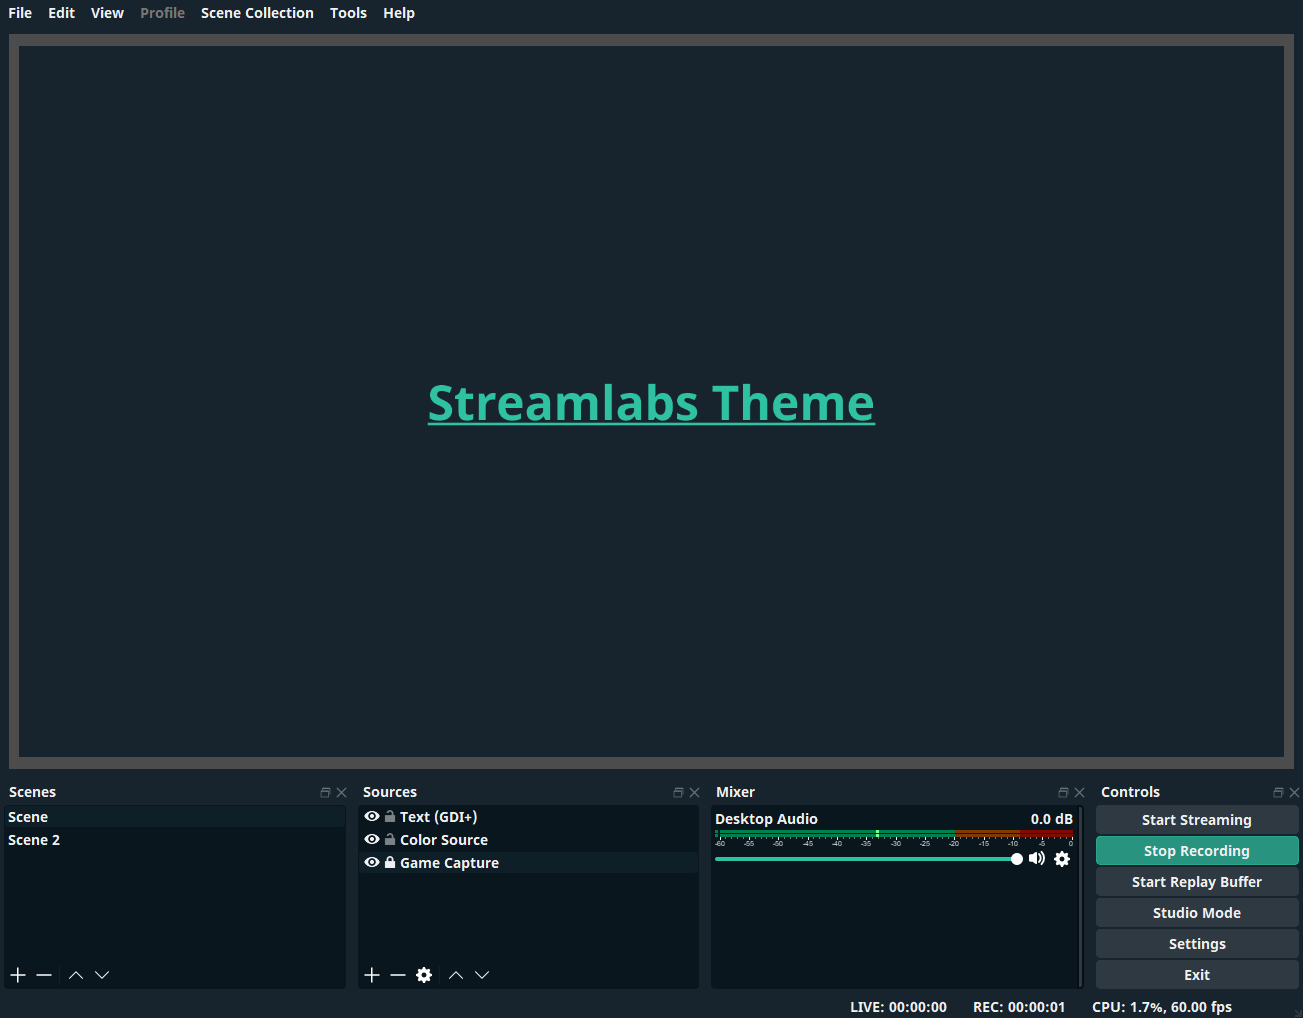 StreamlabsThemePreview.png